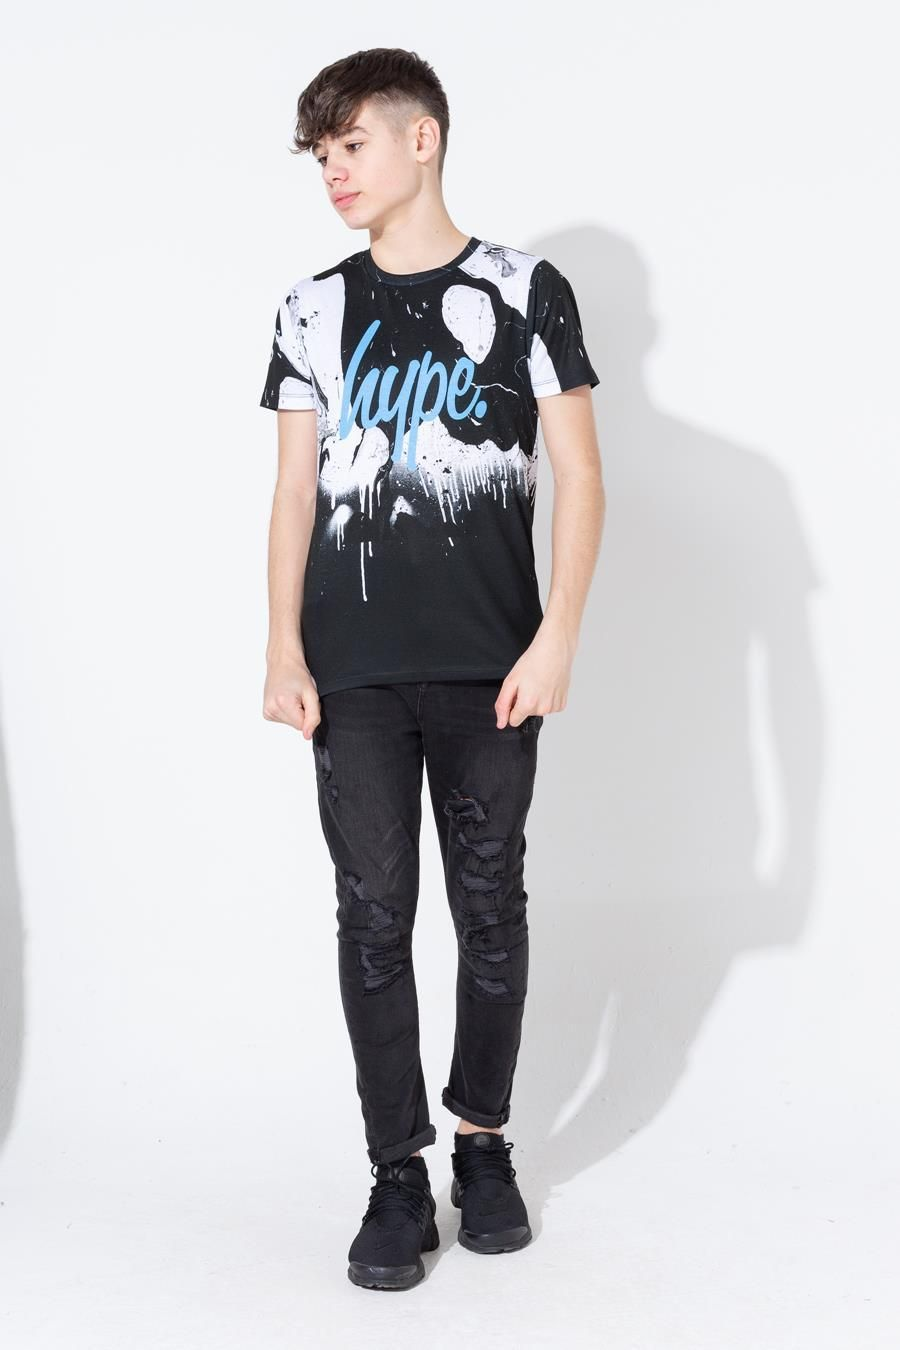 Hype Mono Marble Drips Kids T-Shirt